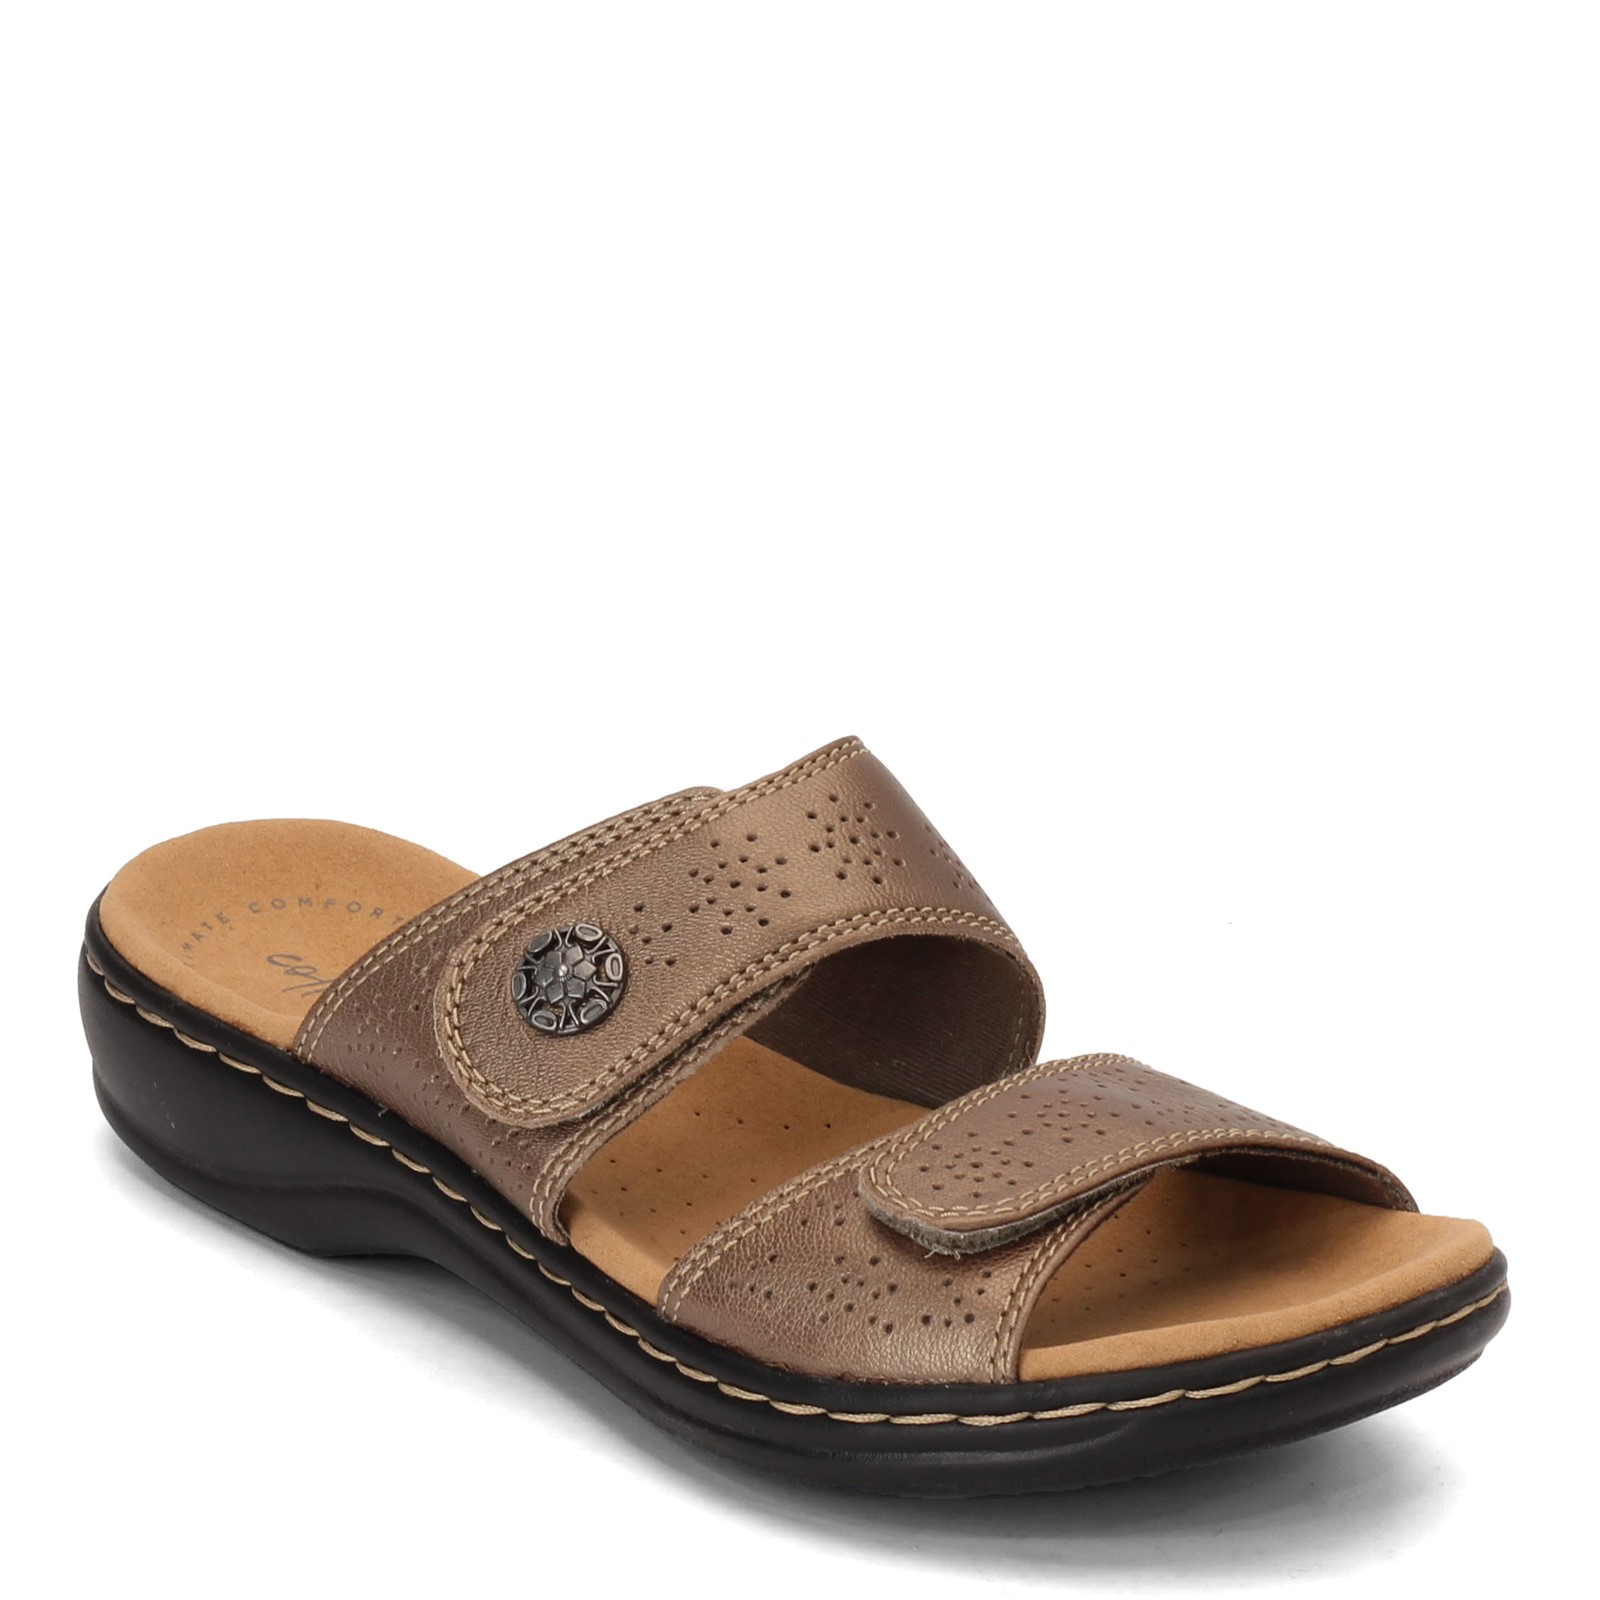 Women's Clarks, Leisa Lacole Slide Sandals